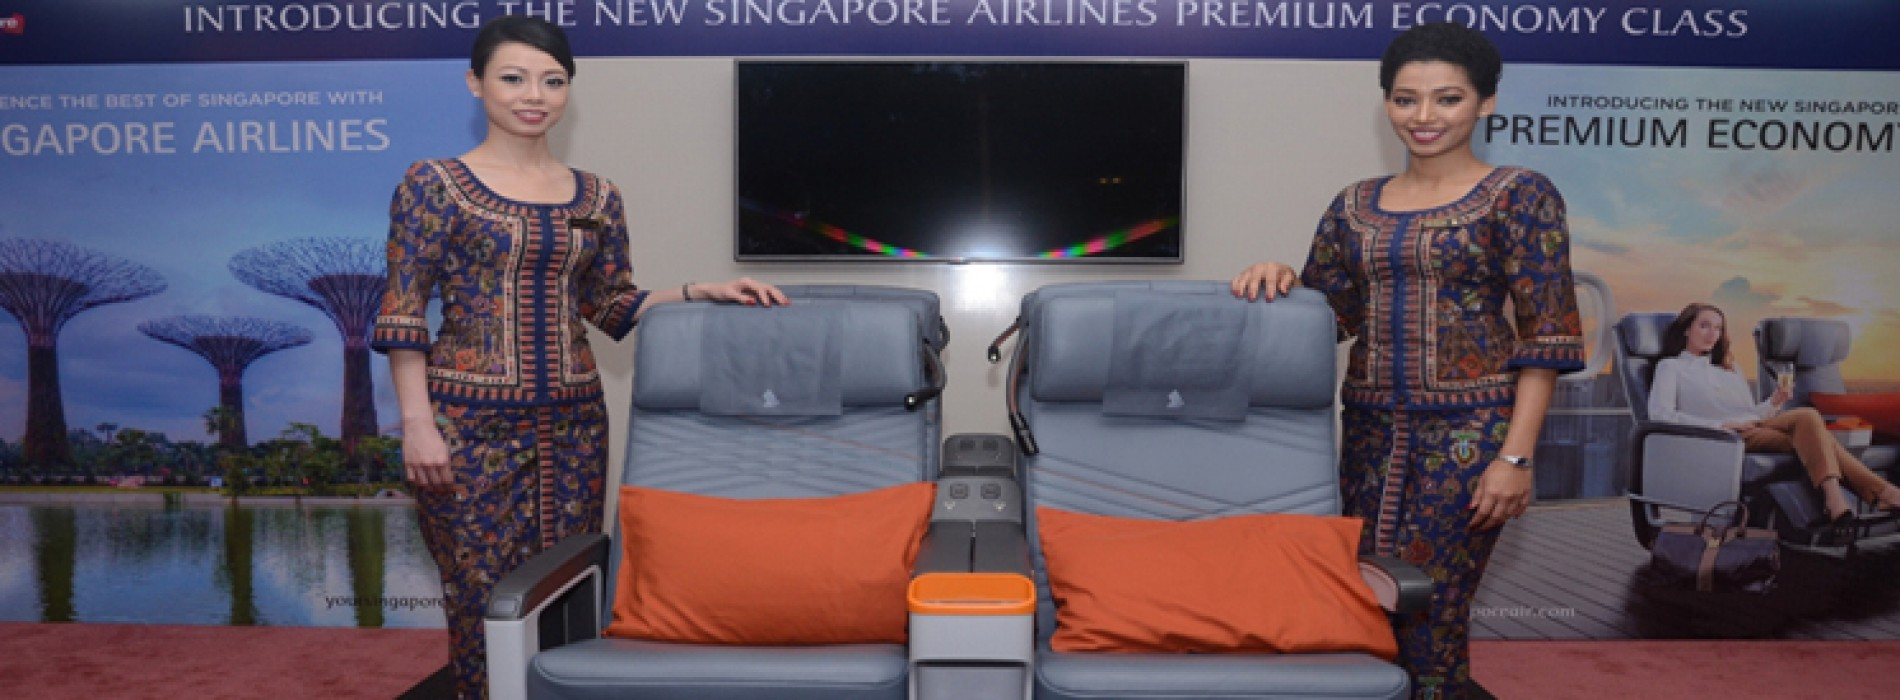 Singapore Airlines unveils new Premium Economy Class Experience in India